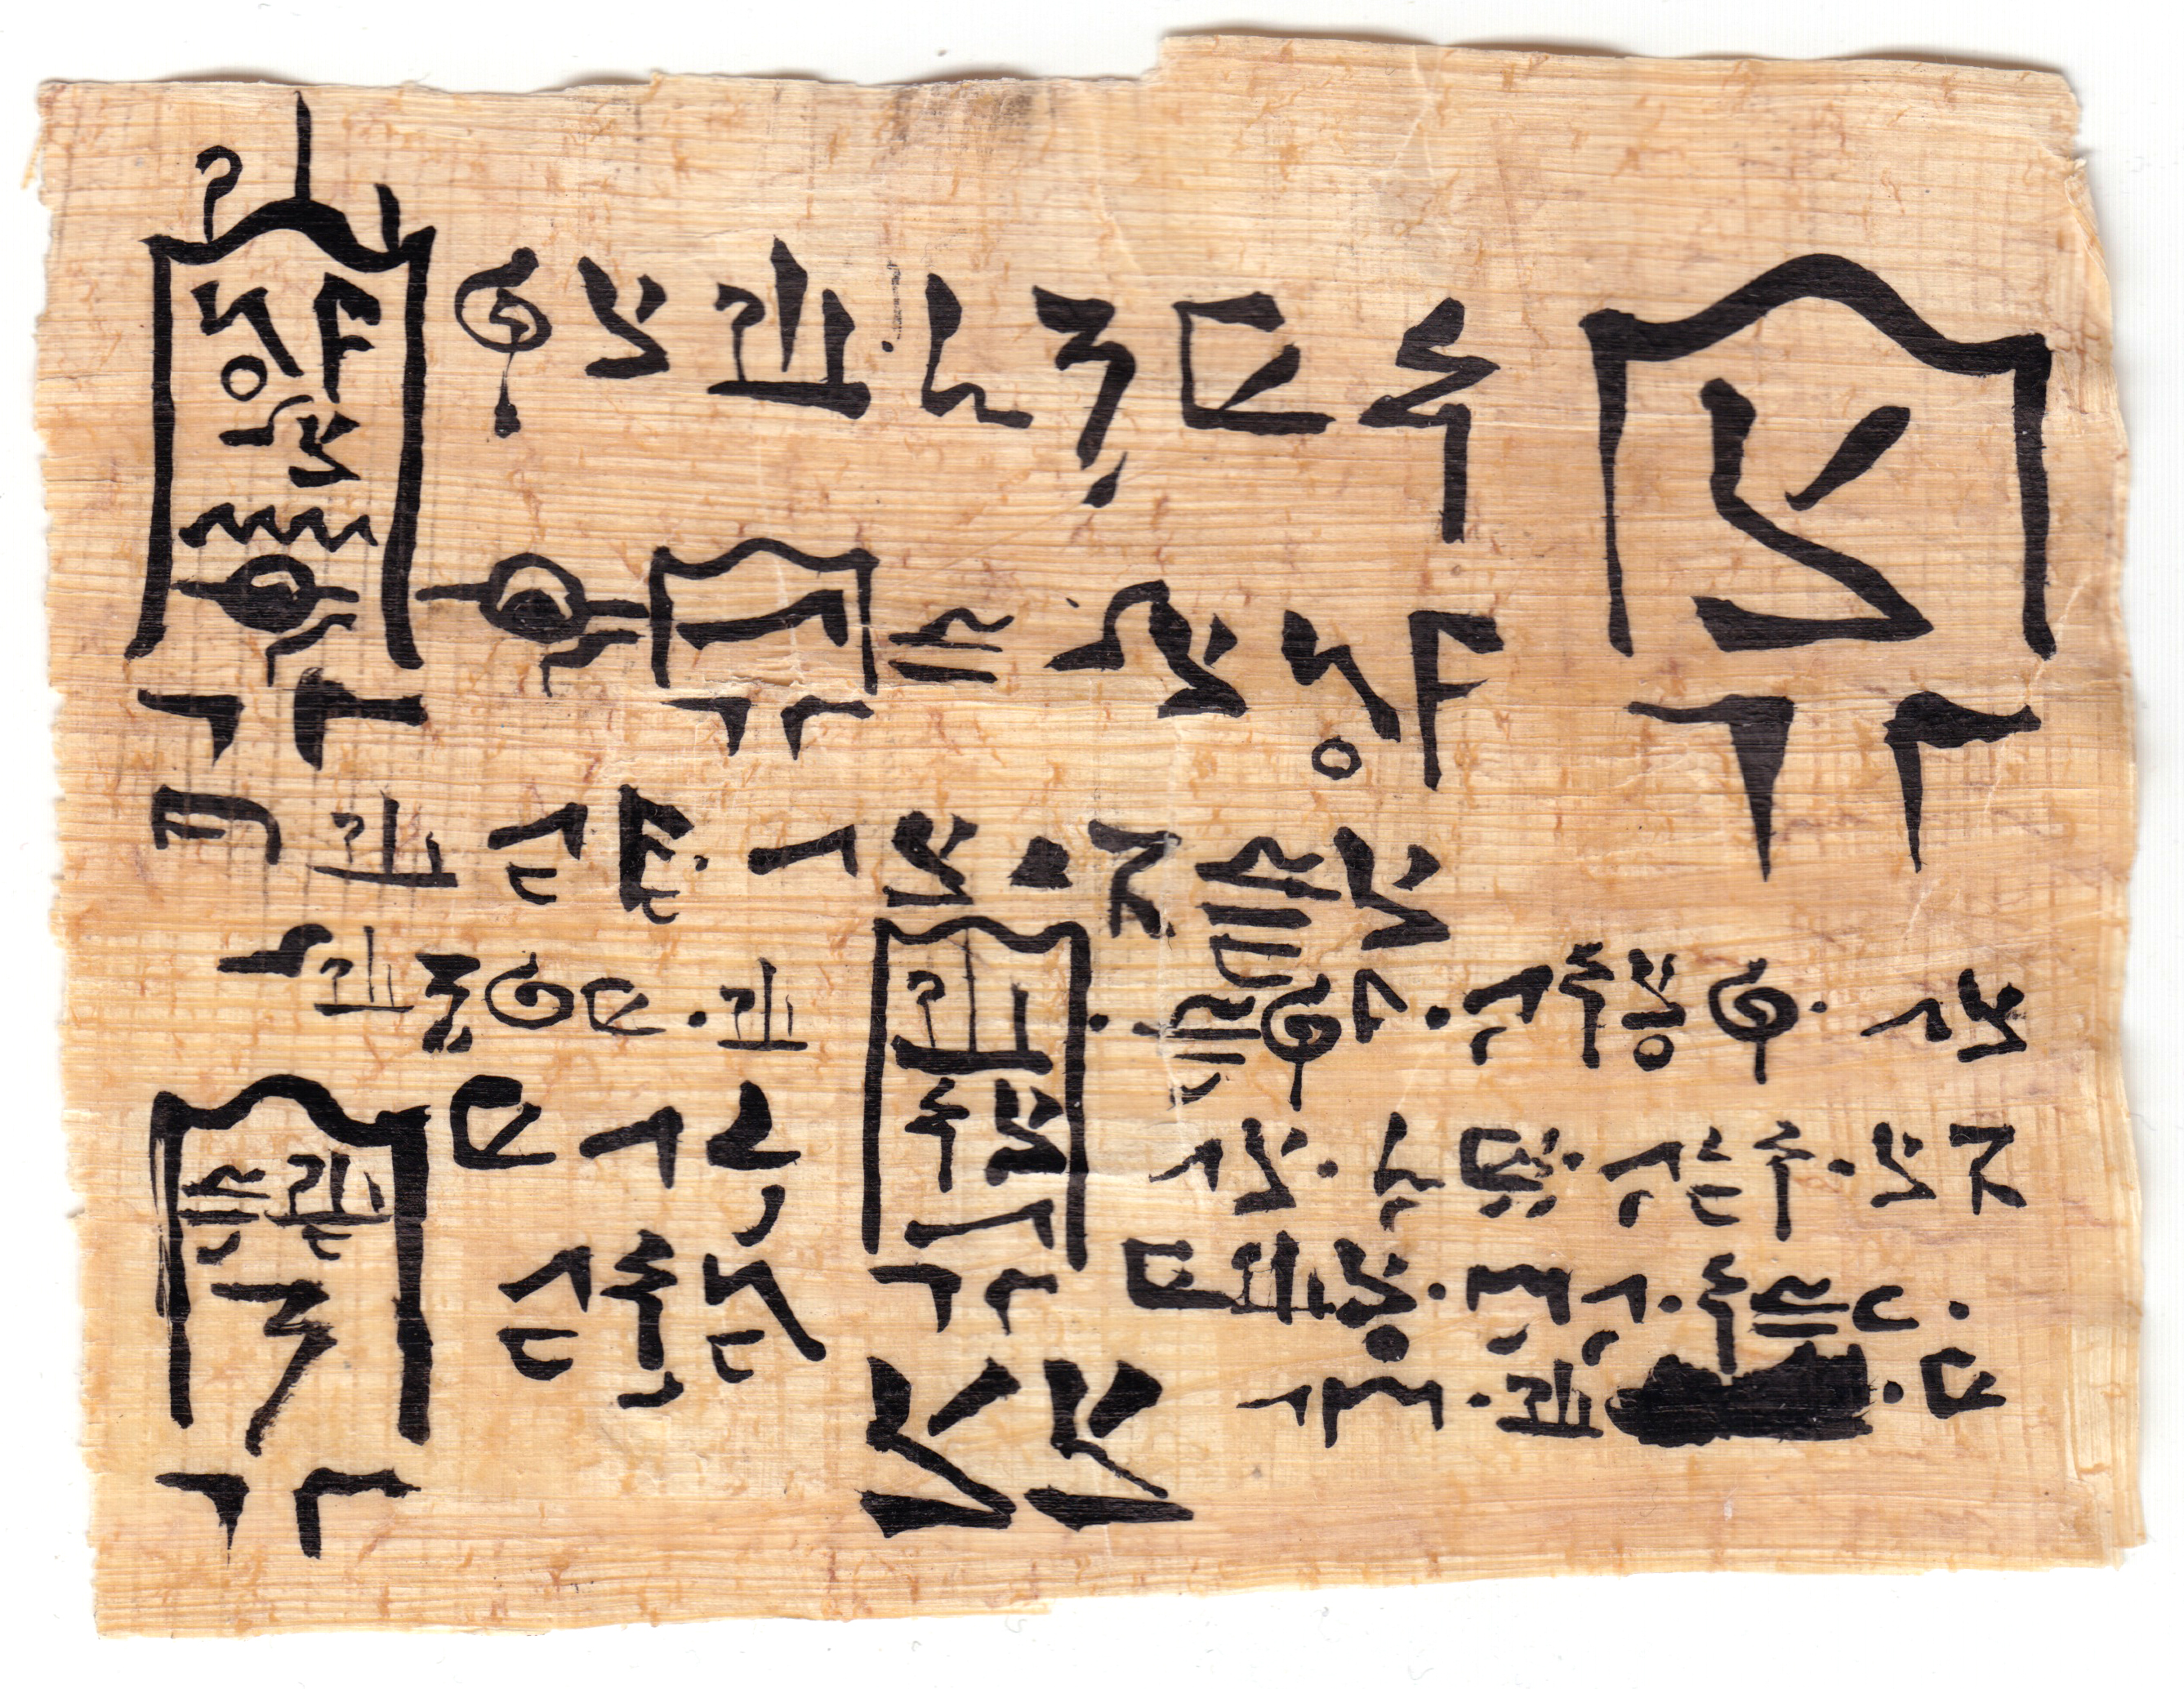 The Lady Gudiymu makes a promise. Note error in bottom right, signature in bottom left, the name of the Great River of the East on the top left.